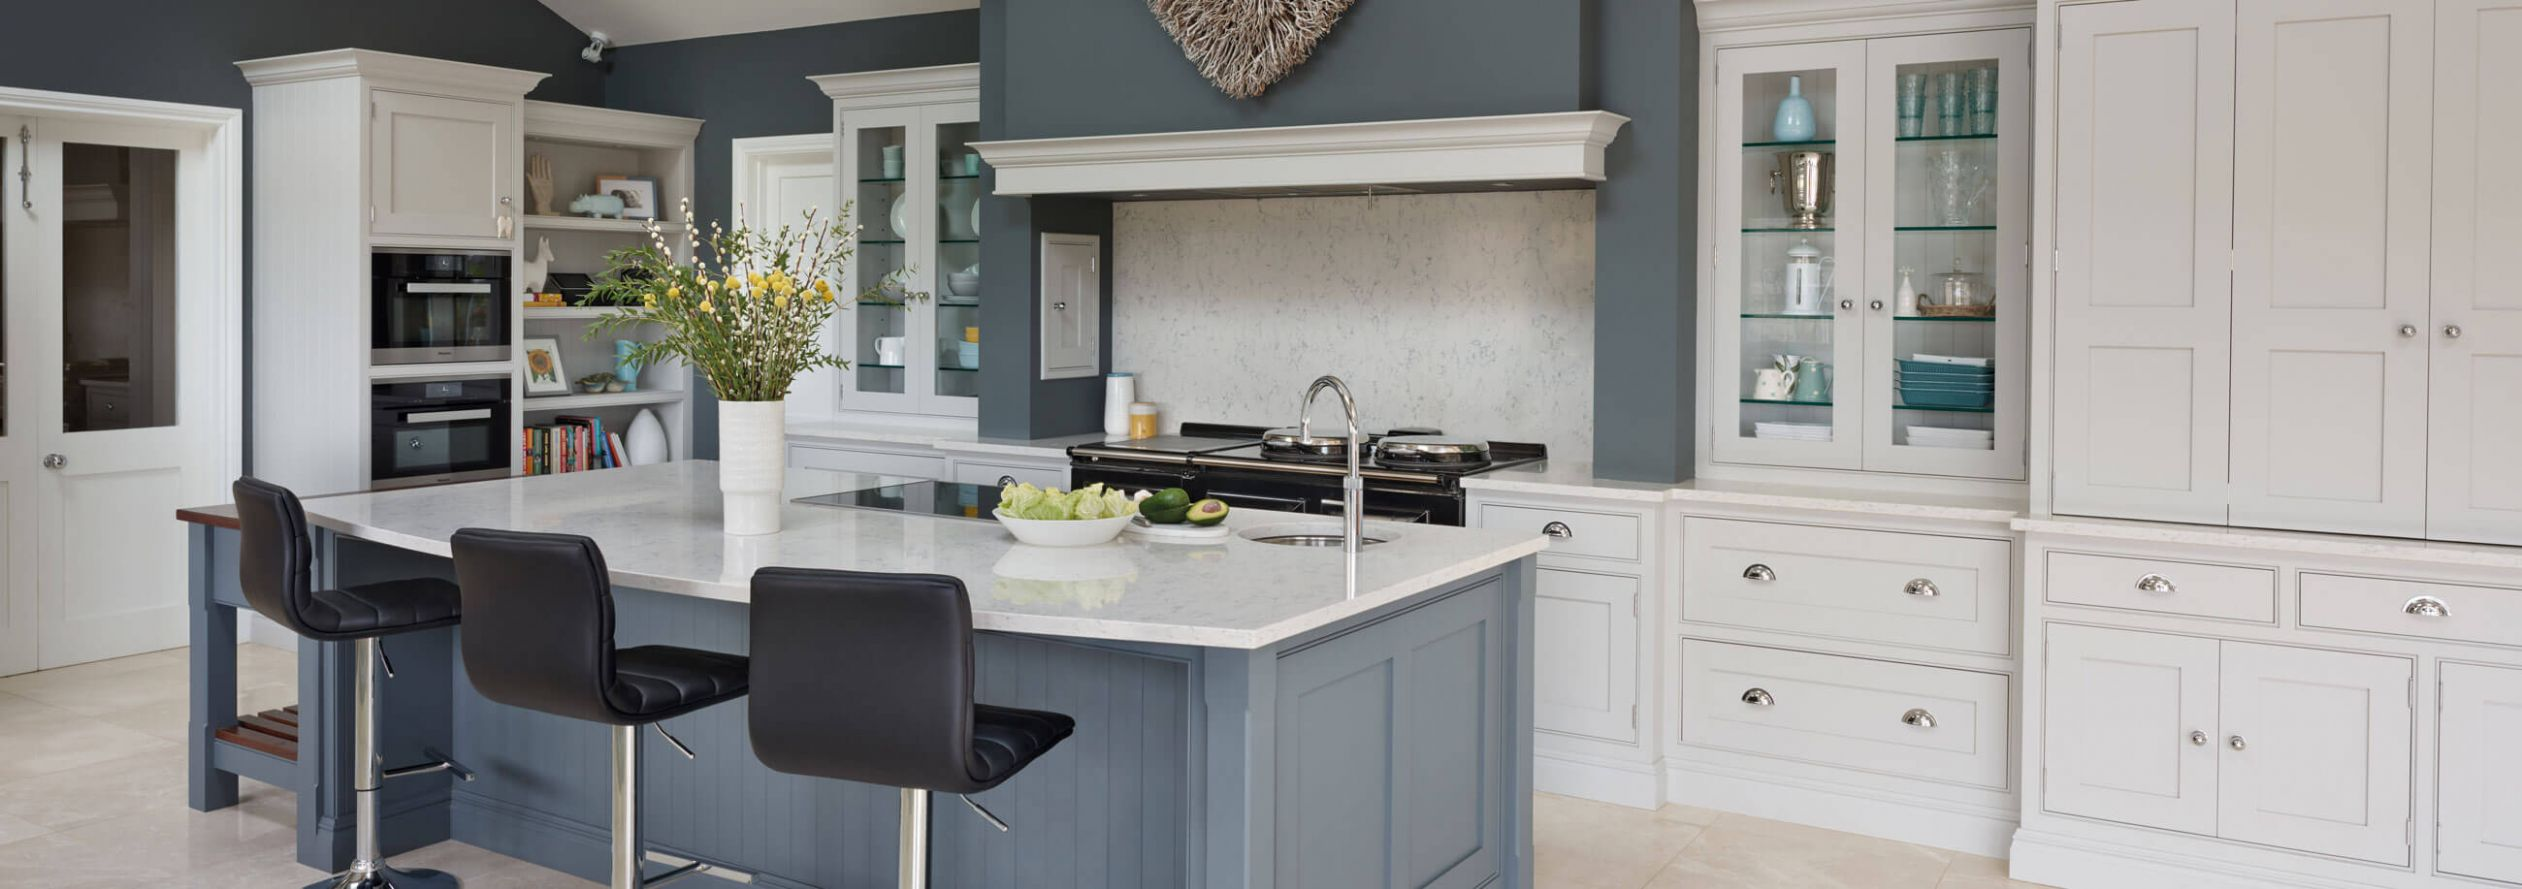 Collate Your Kitchen Design Ideas with Pinterest Mood Boards - kitchen ideas uk pinterest